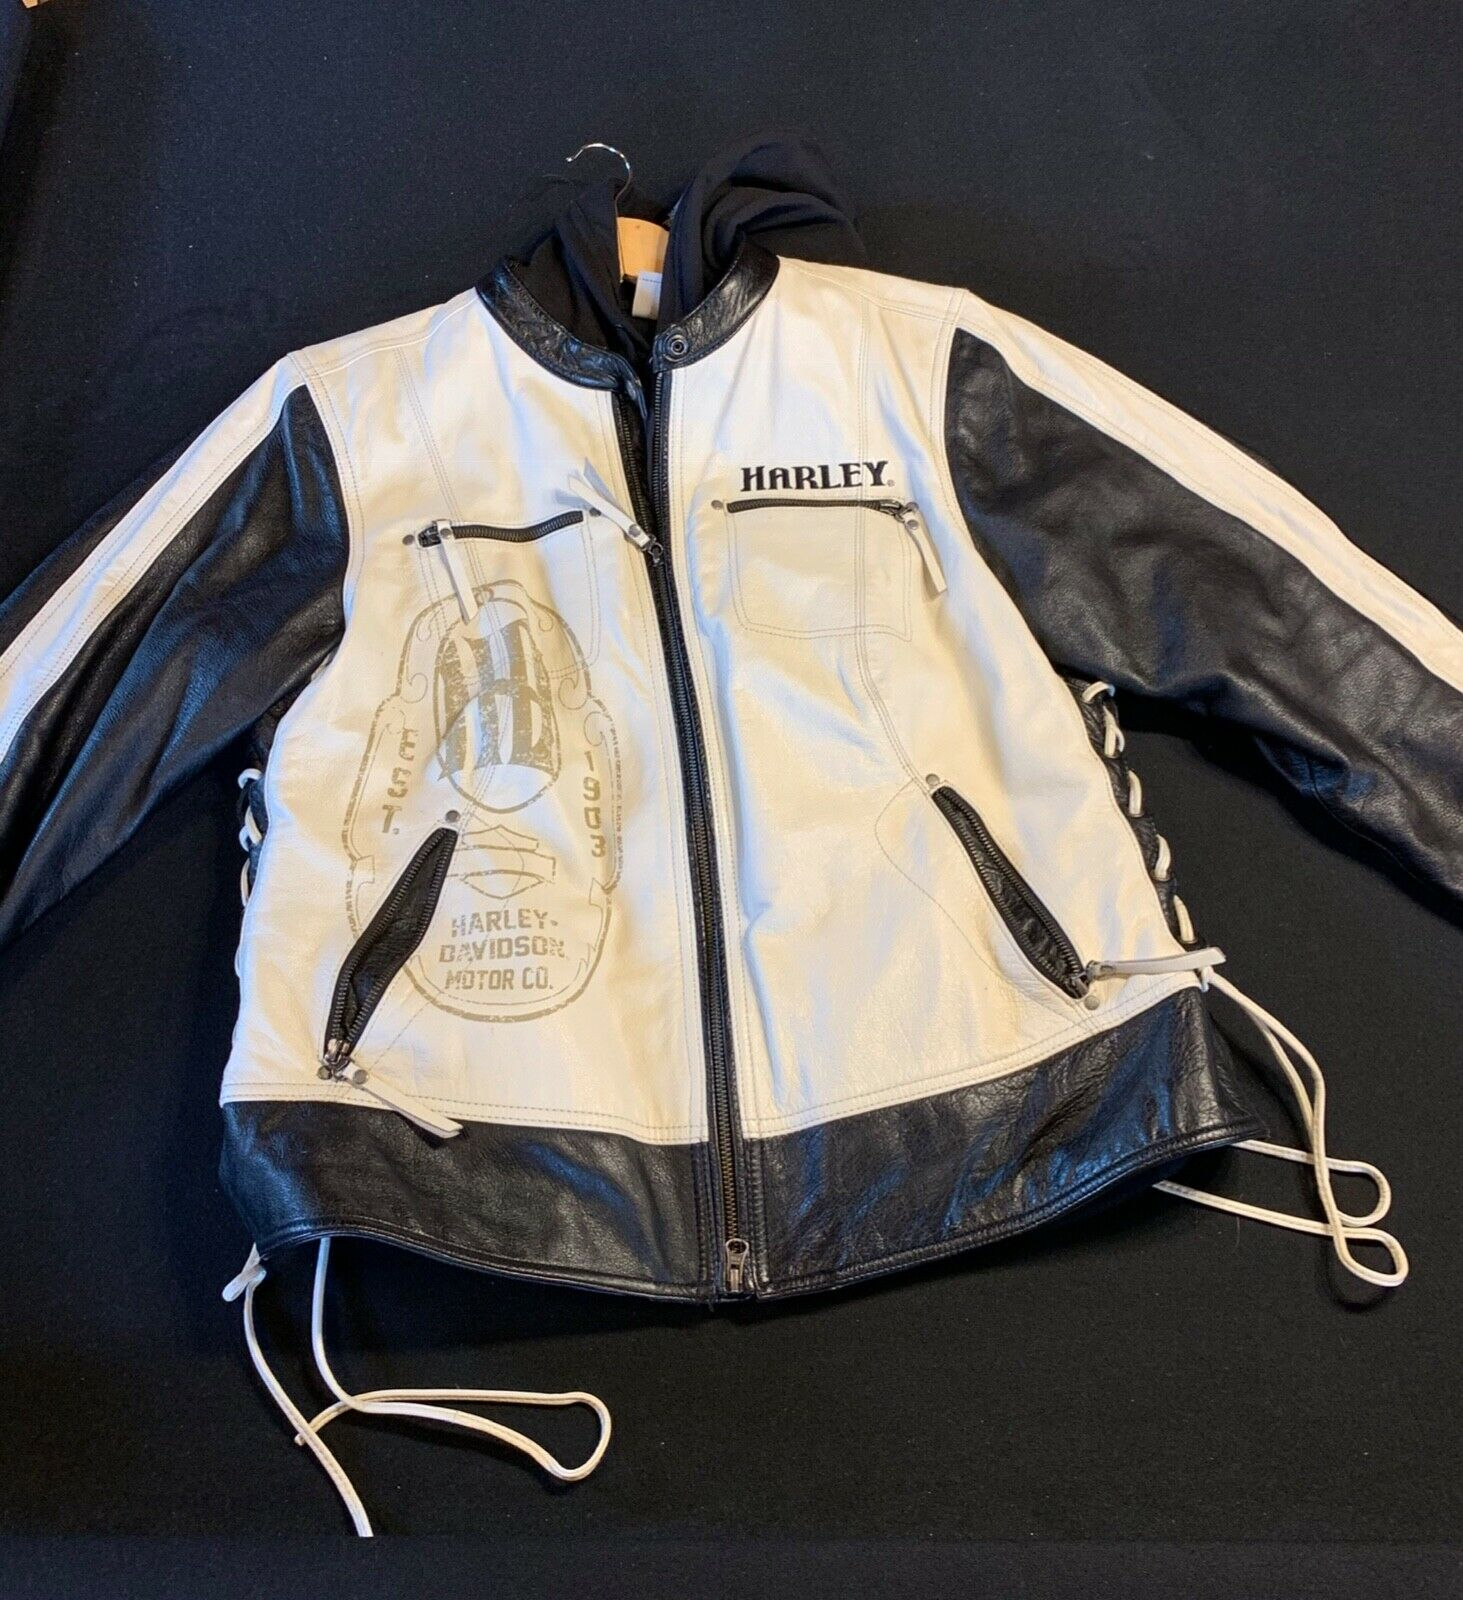 Forsale At 102 Womens Harley Davson Leather Jacket Size 2w With Snap In Hoodie Woman Leather Jacket Leather Jackets Women Jackets Ebay Hoodies [ 1600 x 1463 Pixel ]